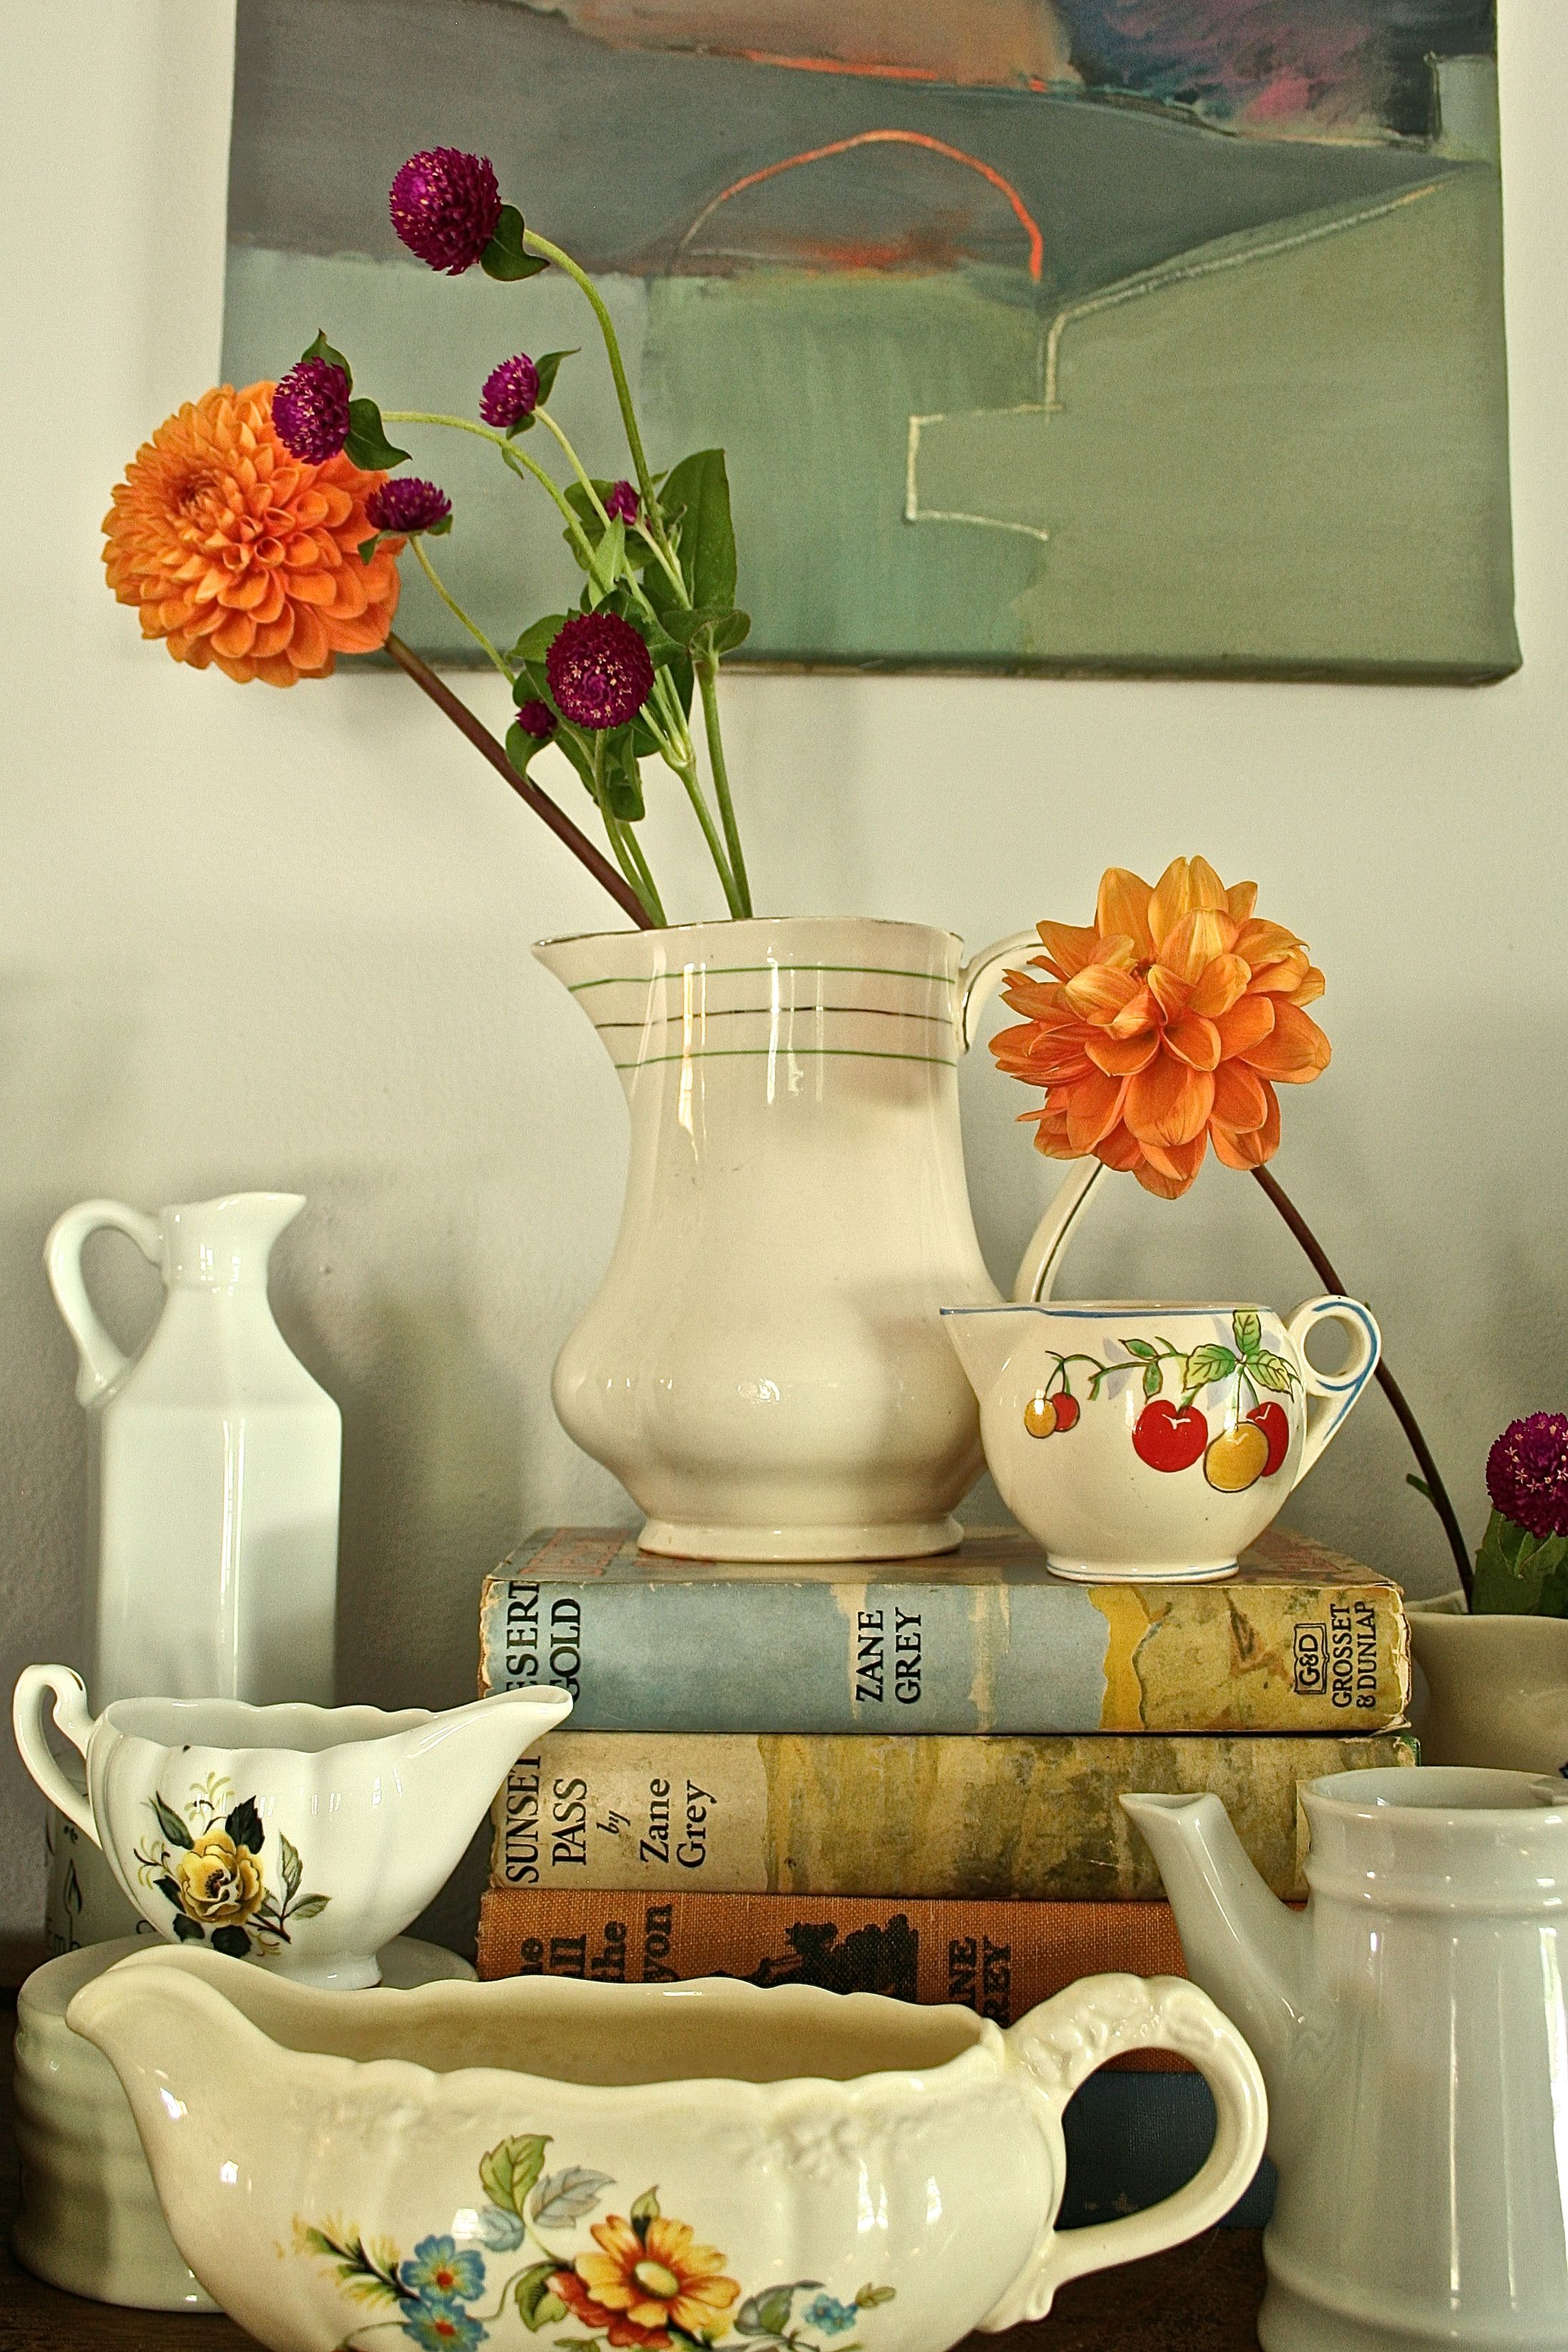 How to build a vignette